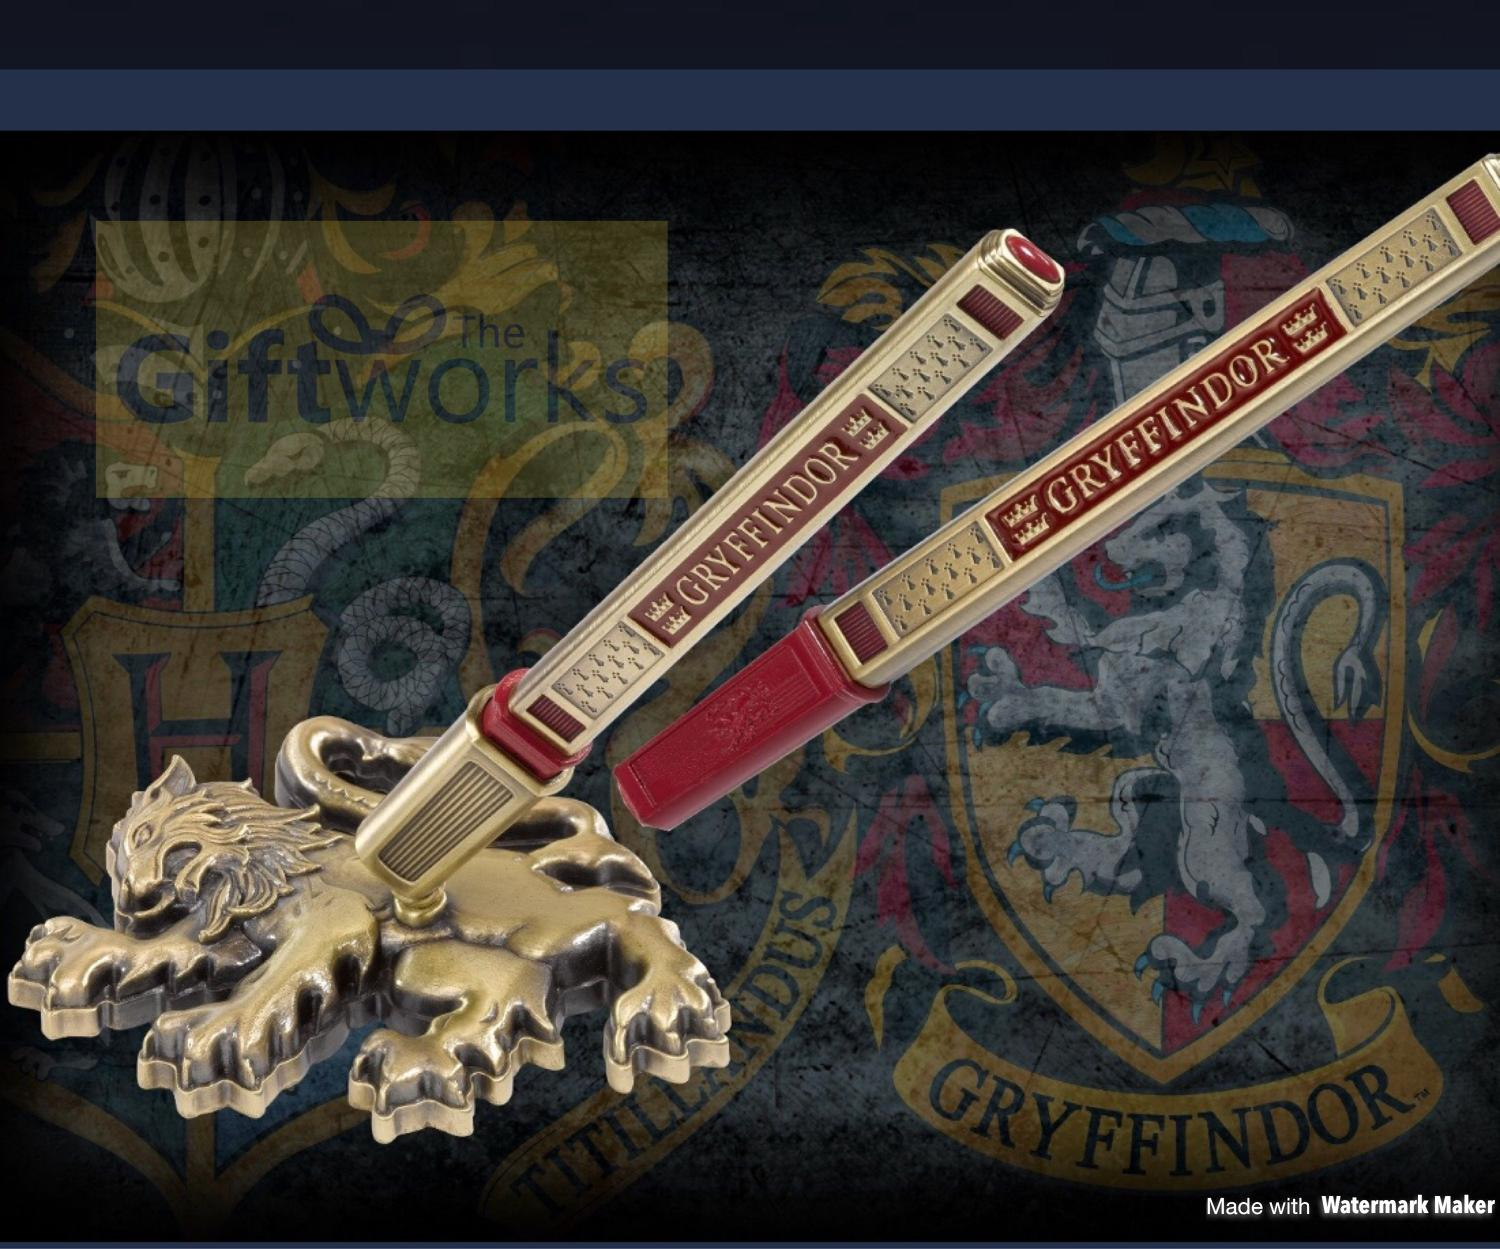 Harry Potter Gryffindor Pen and Display